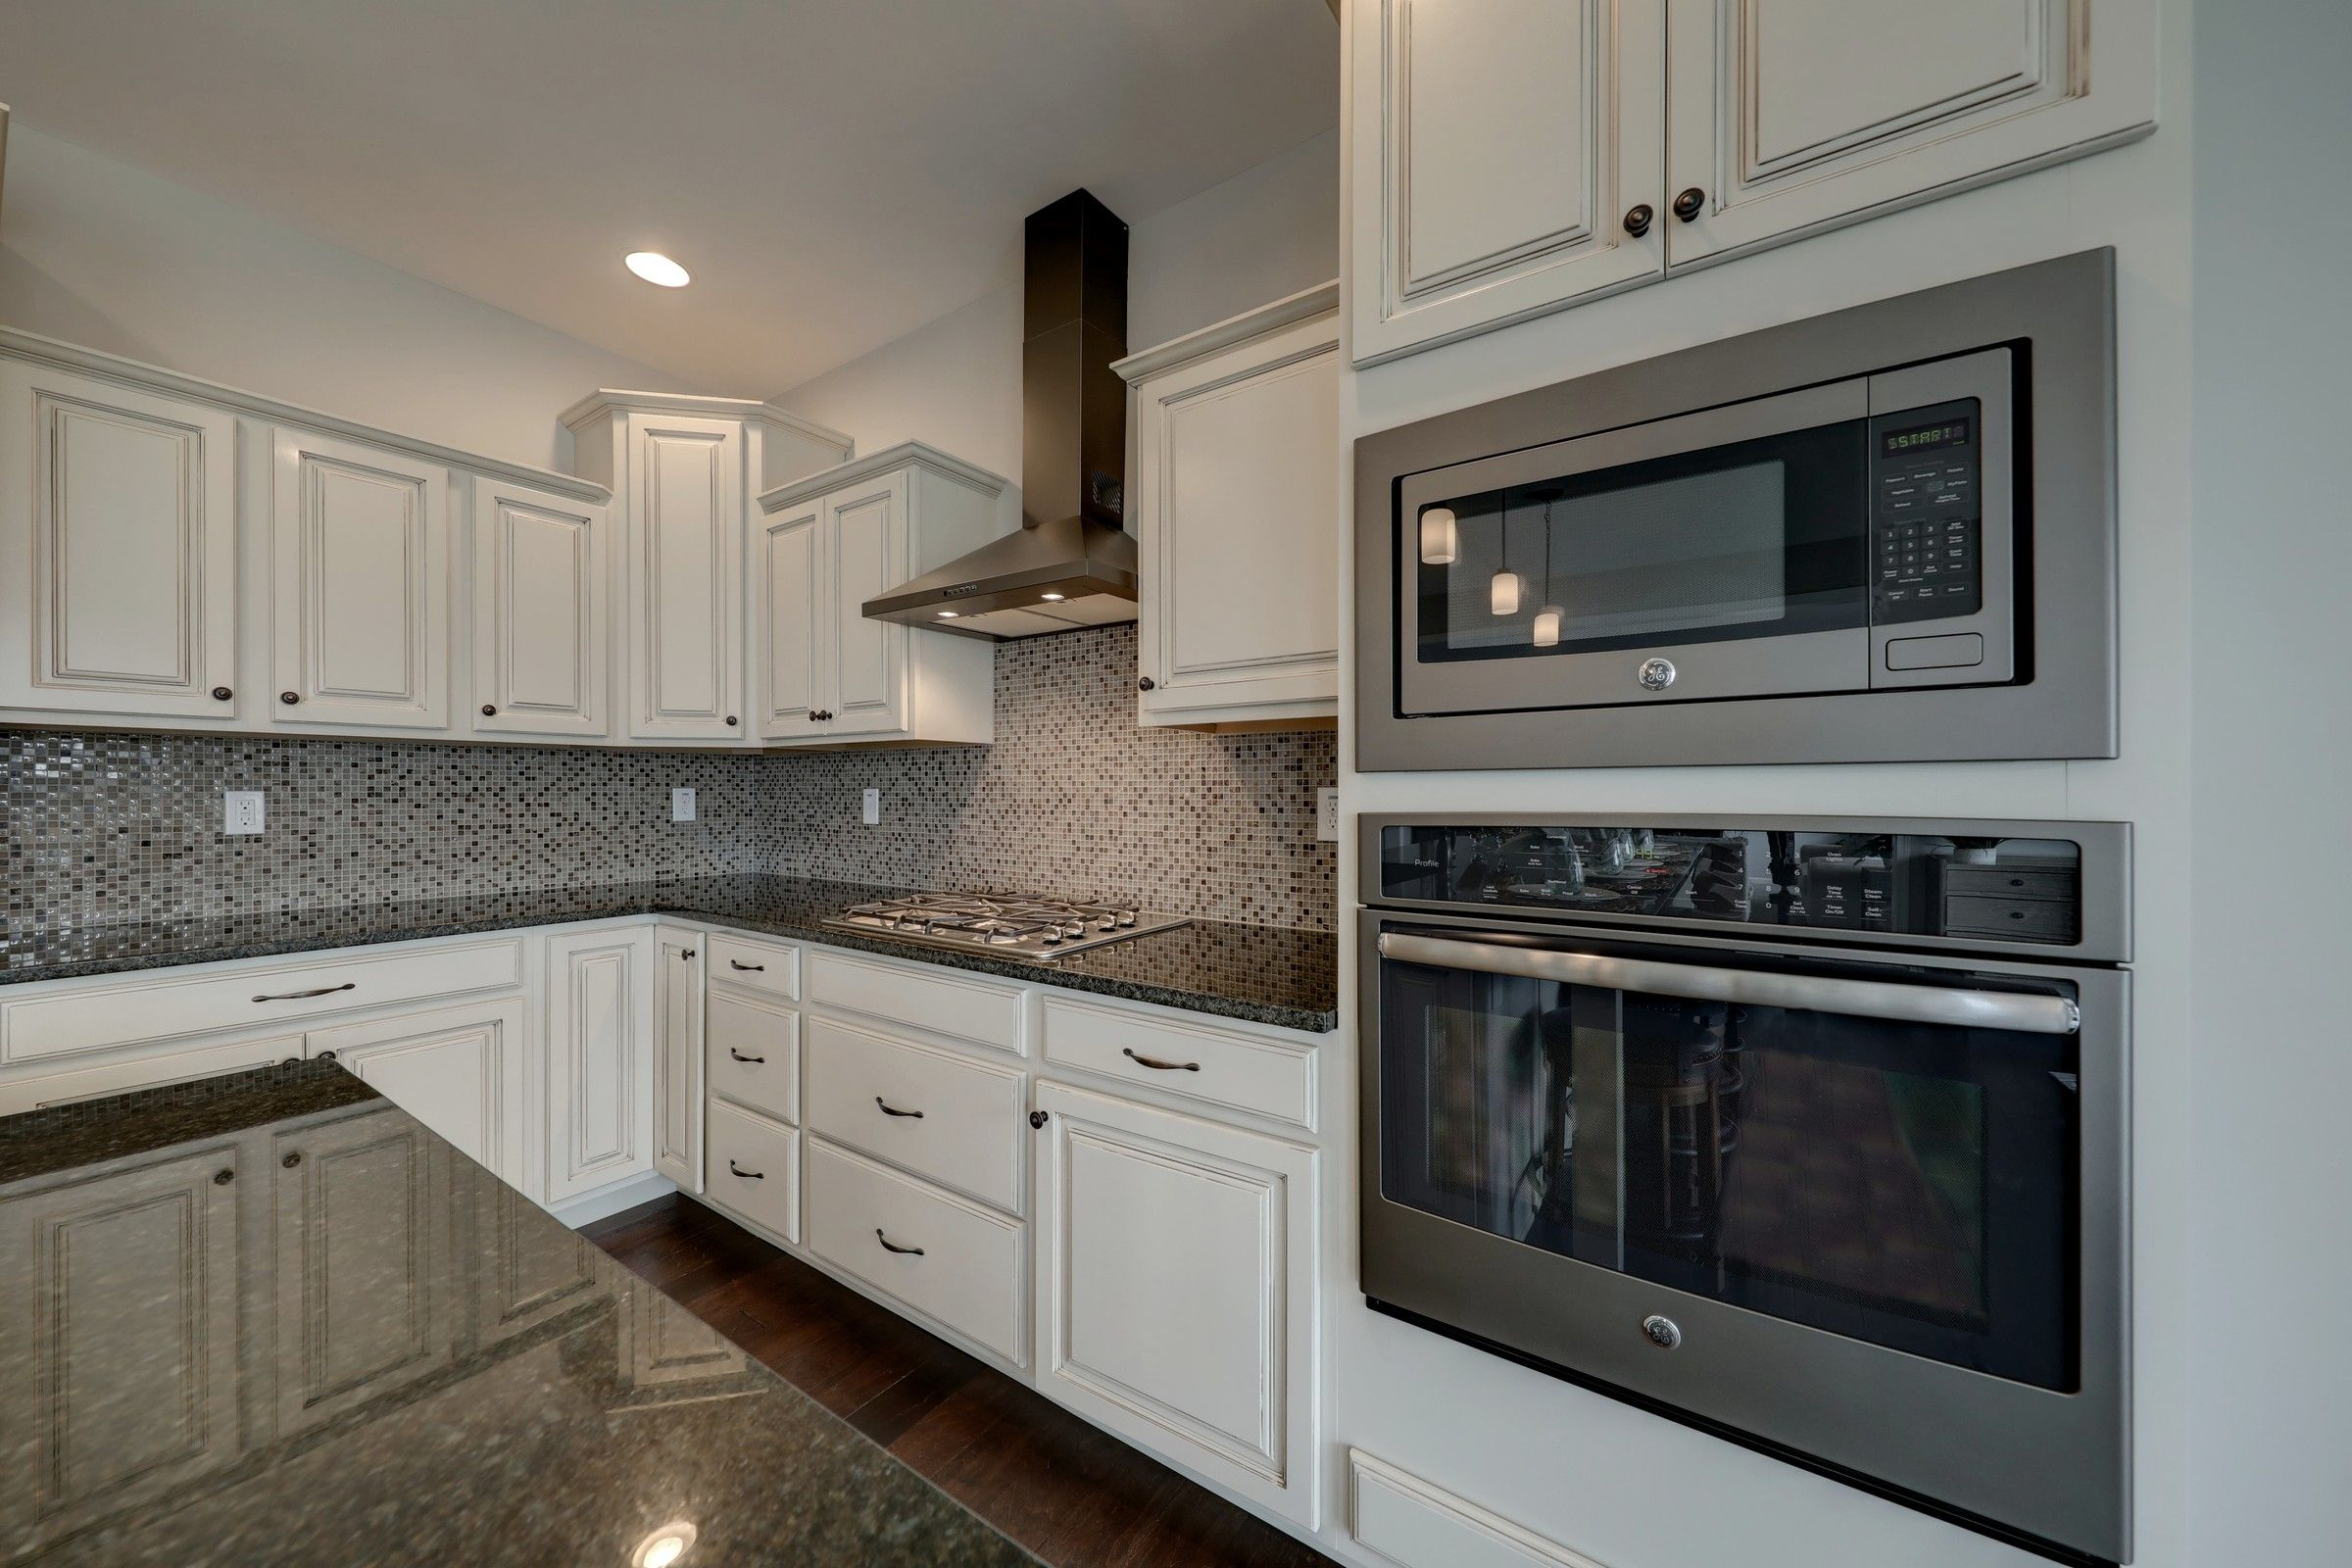 Kitchen featured in the Ethan Traditional By Keystone Custom Homes in Baltimore, MD